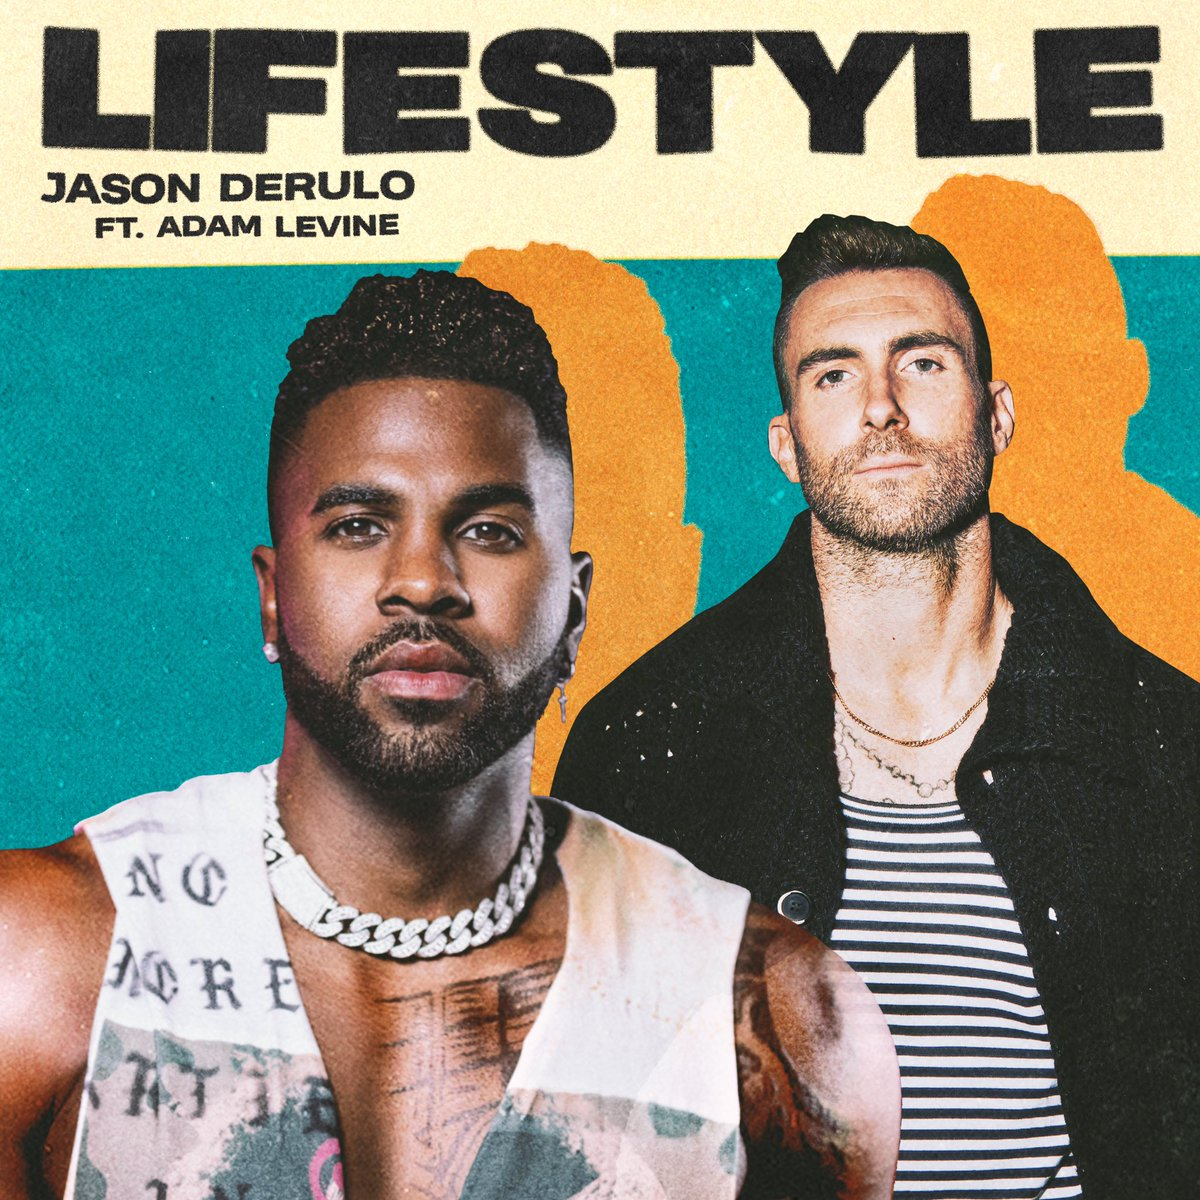 """A bop. @jasonderulo links with @adamlevine for the instantly catchy """"Lifestyle"""":"""